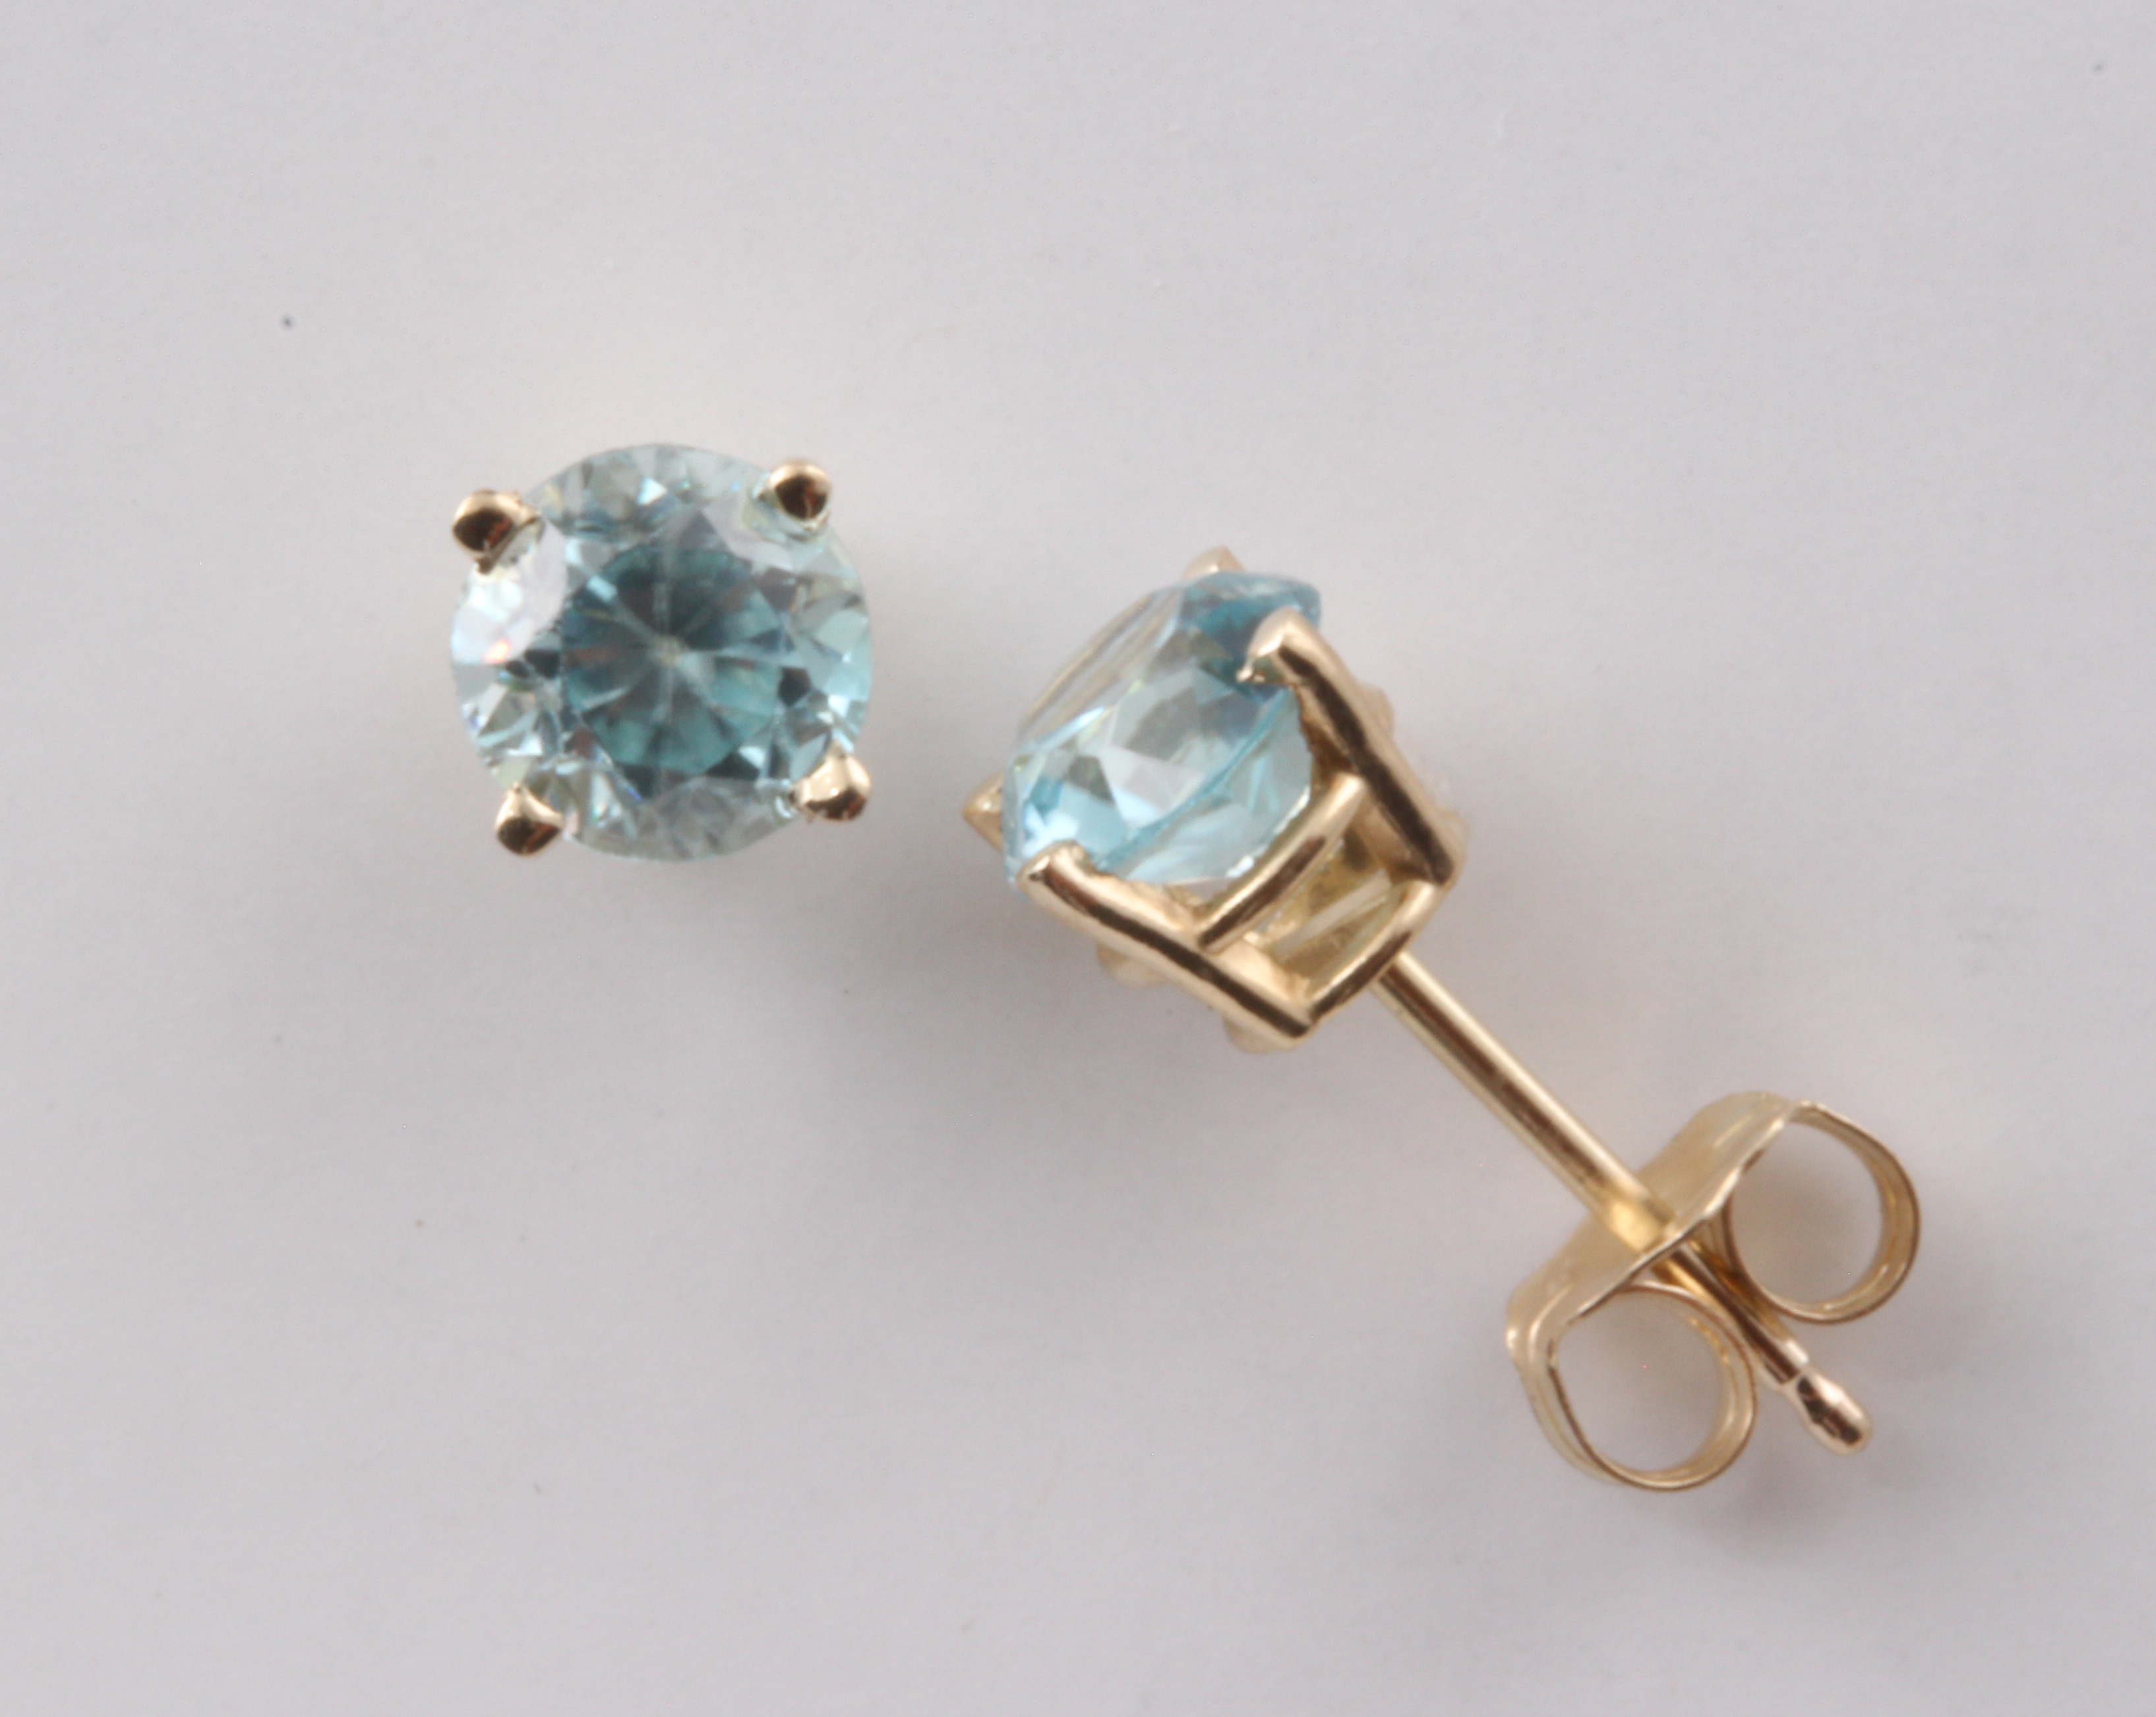 b0683360a ... Blue Zircon Stud Earrings in 14K Yellow Gold. $299.00. Quantity